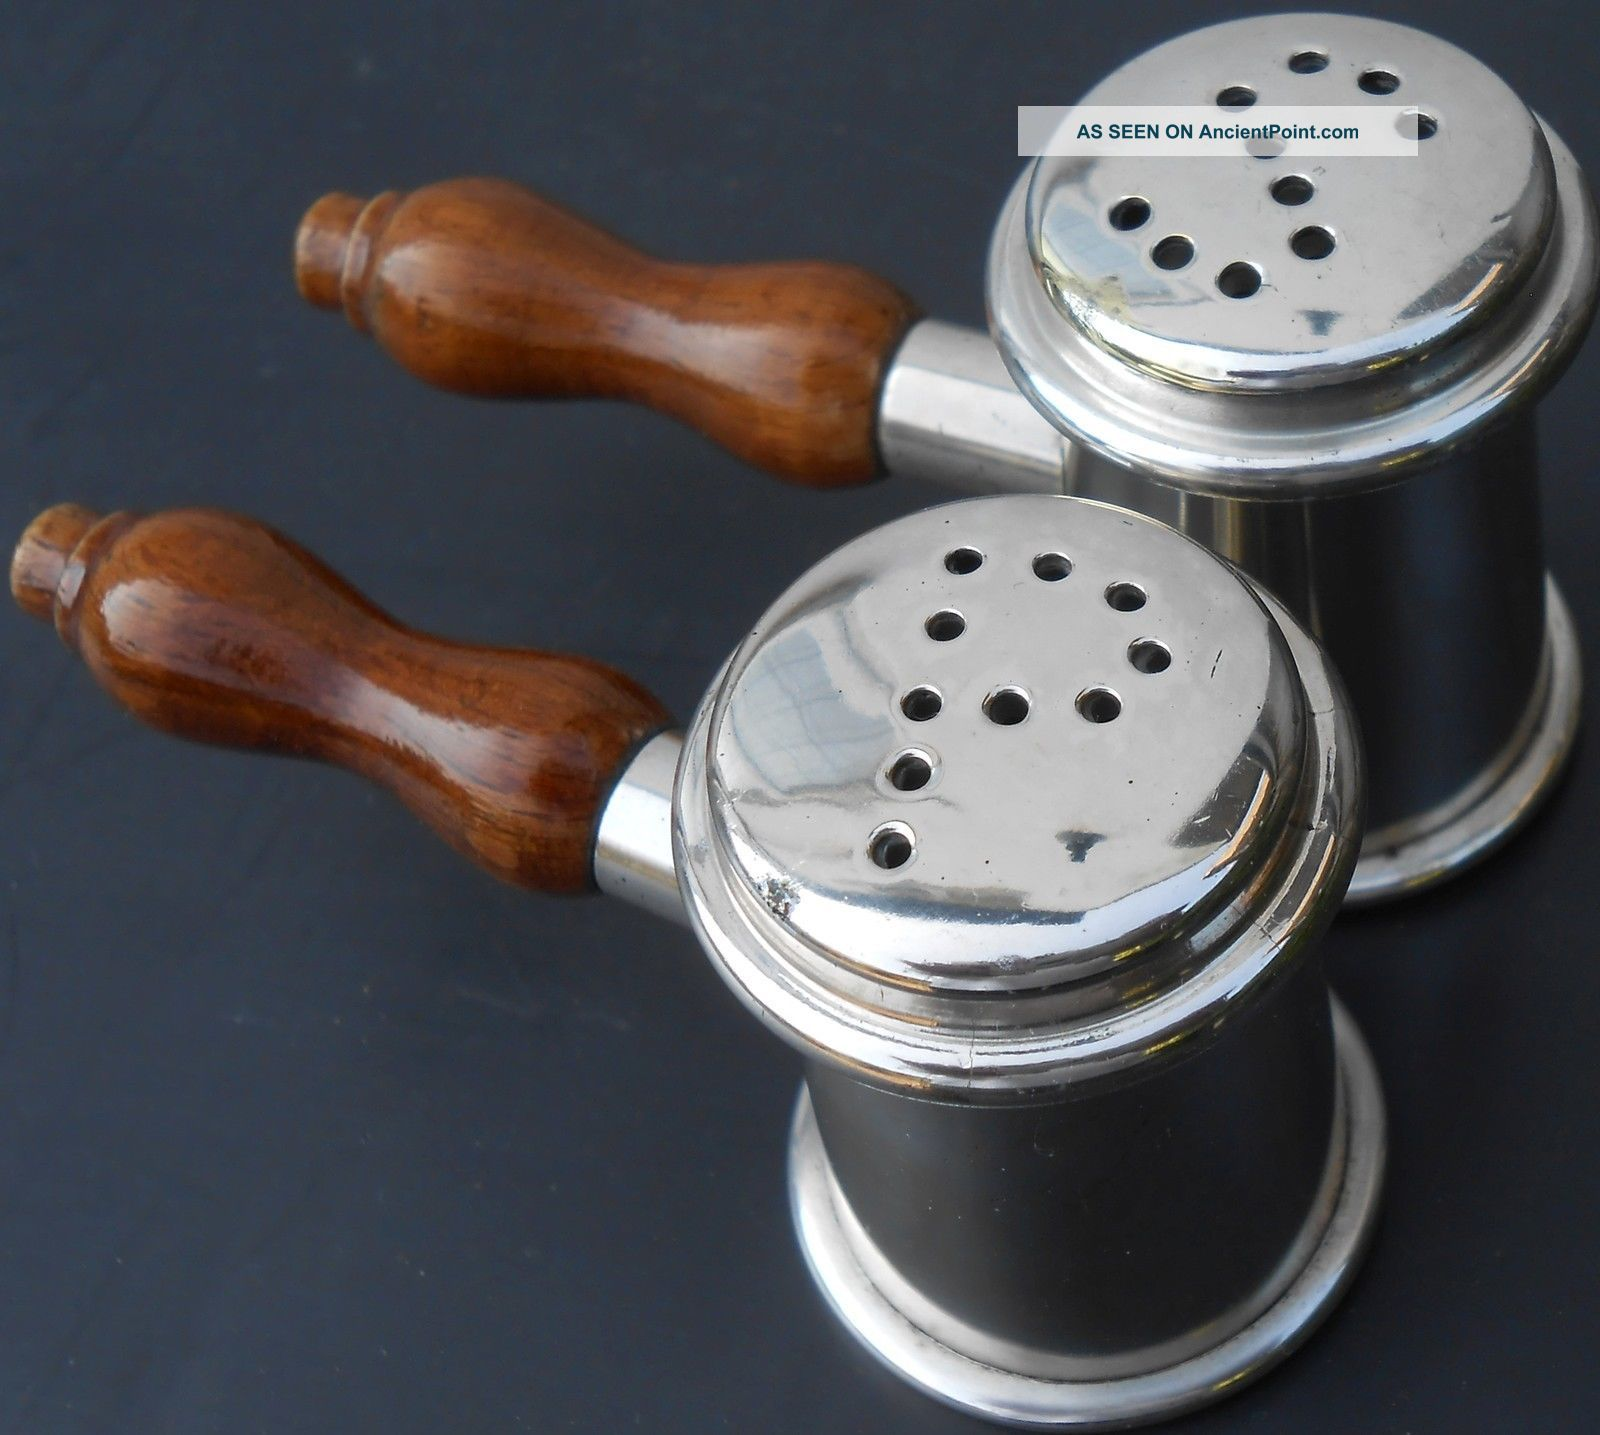 Pair Auctioneers Gavel Shaped Salt & Pepper Pots - Vintage - Silver Plated Salt & Pepper Cellars/Shakers photo